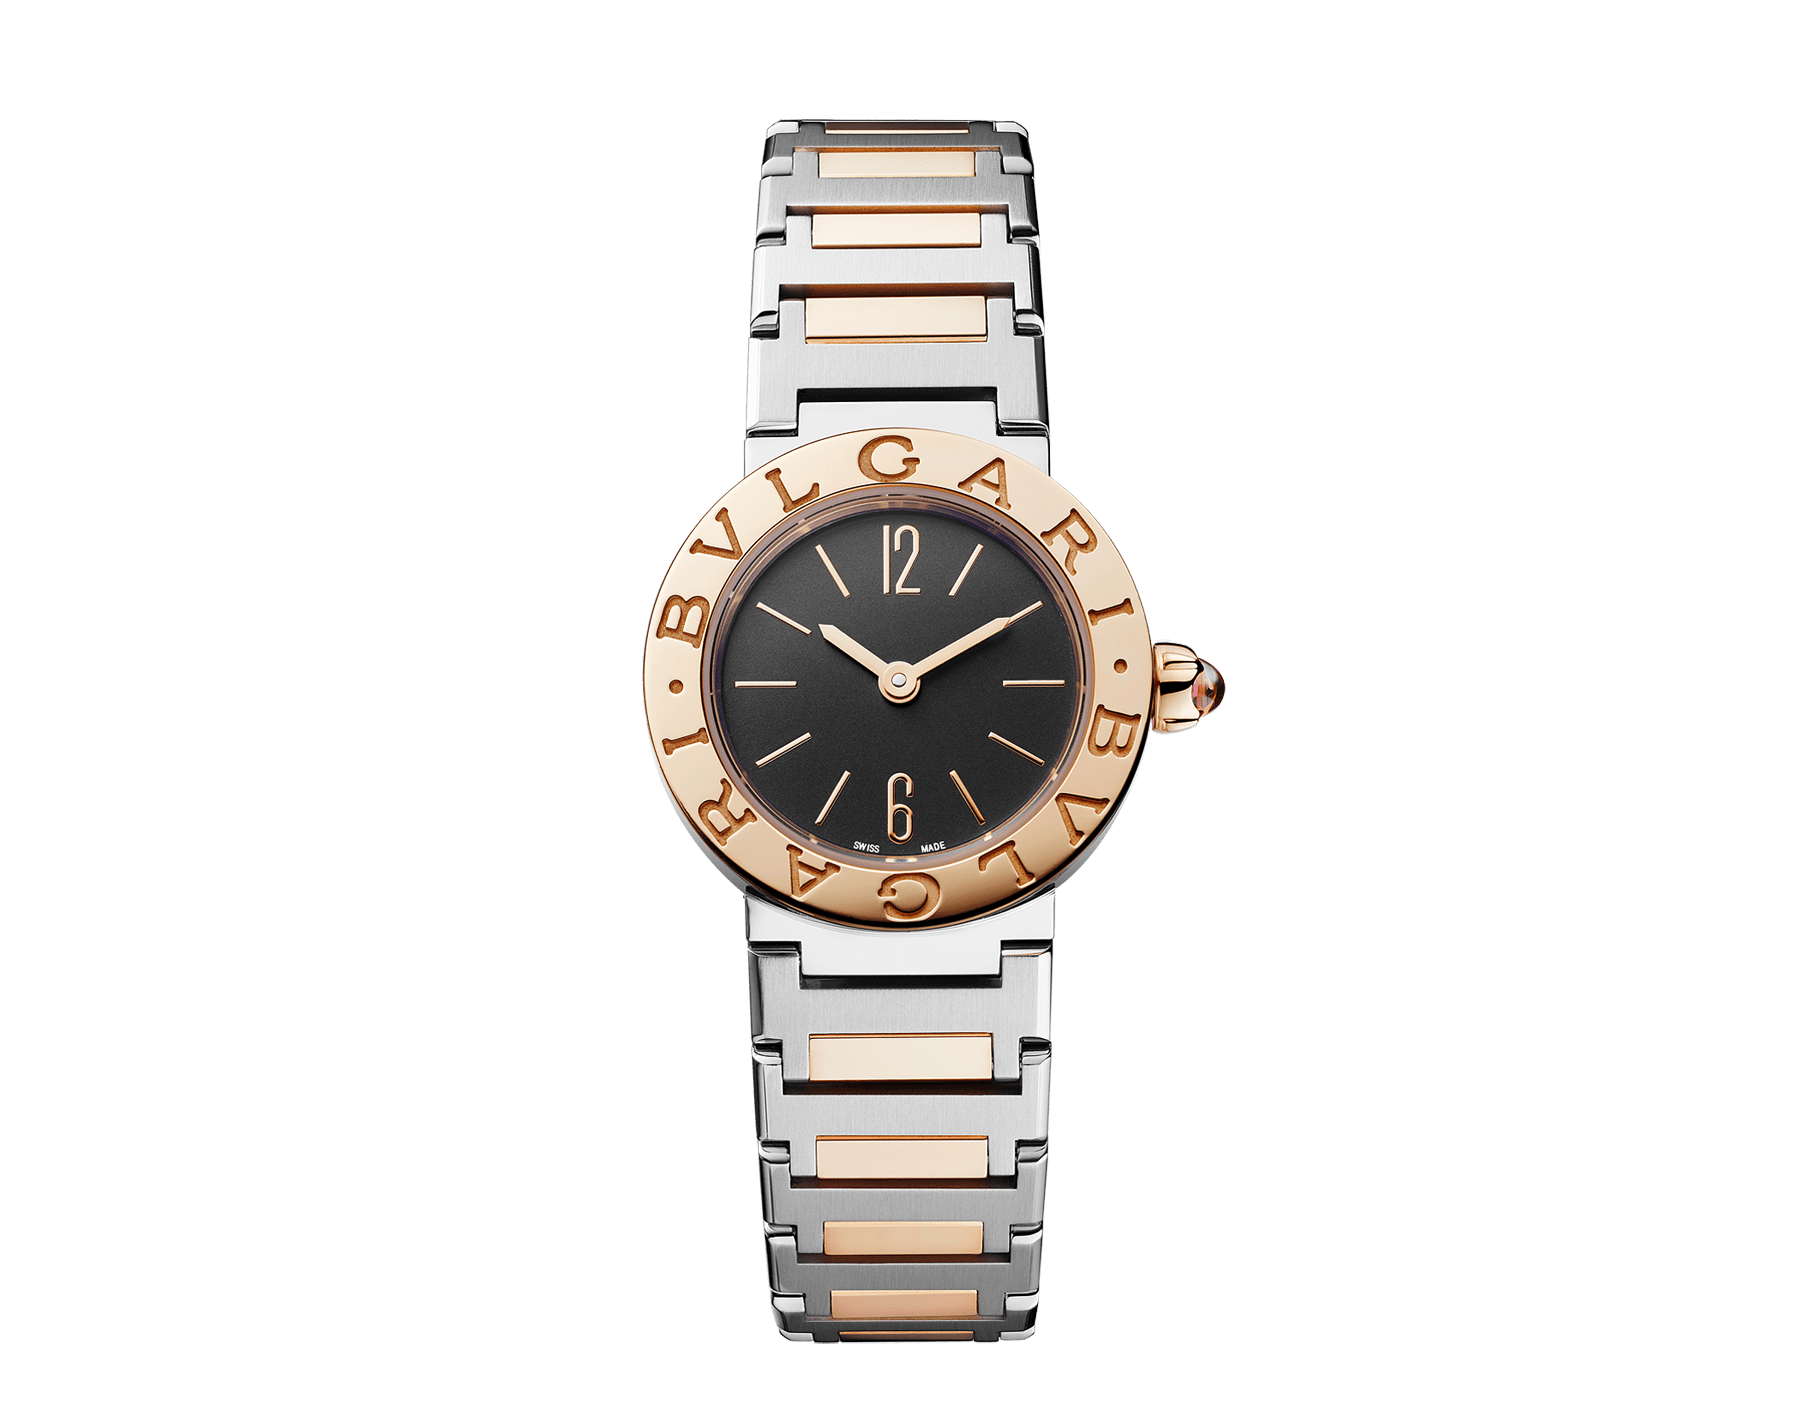 BVLGARI BVLGARI LADY watch with stainless steel case, 18 kt rose gold bezel engraved with double logo, black lacquered dial and 18 kt rose gold and stainless steel bracelet 102944 image 1